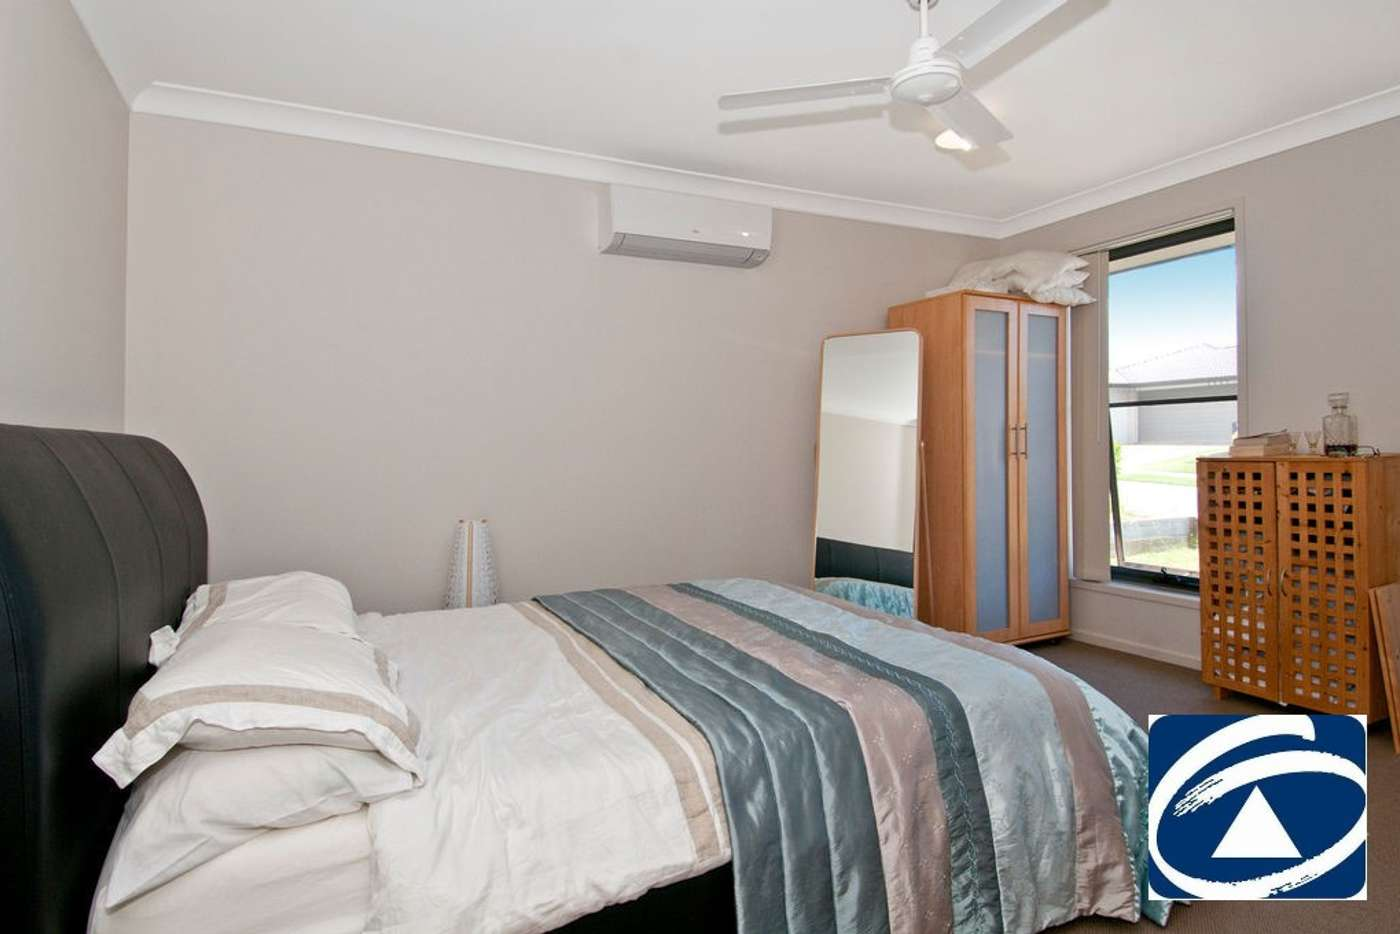 Fifth view of Homely house listing, 6 Orb Street, Yarrabilba QLD 4207